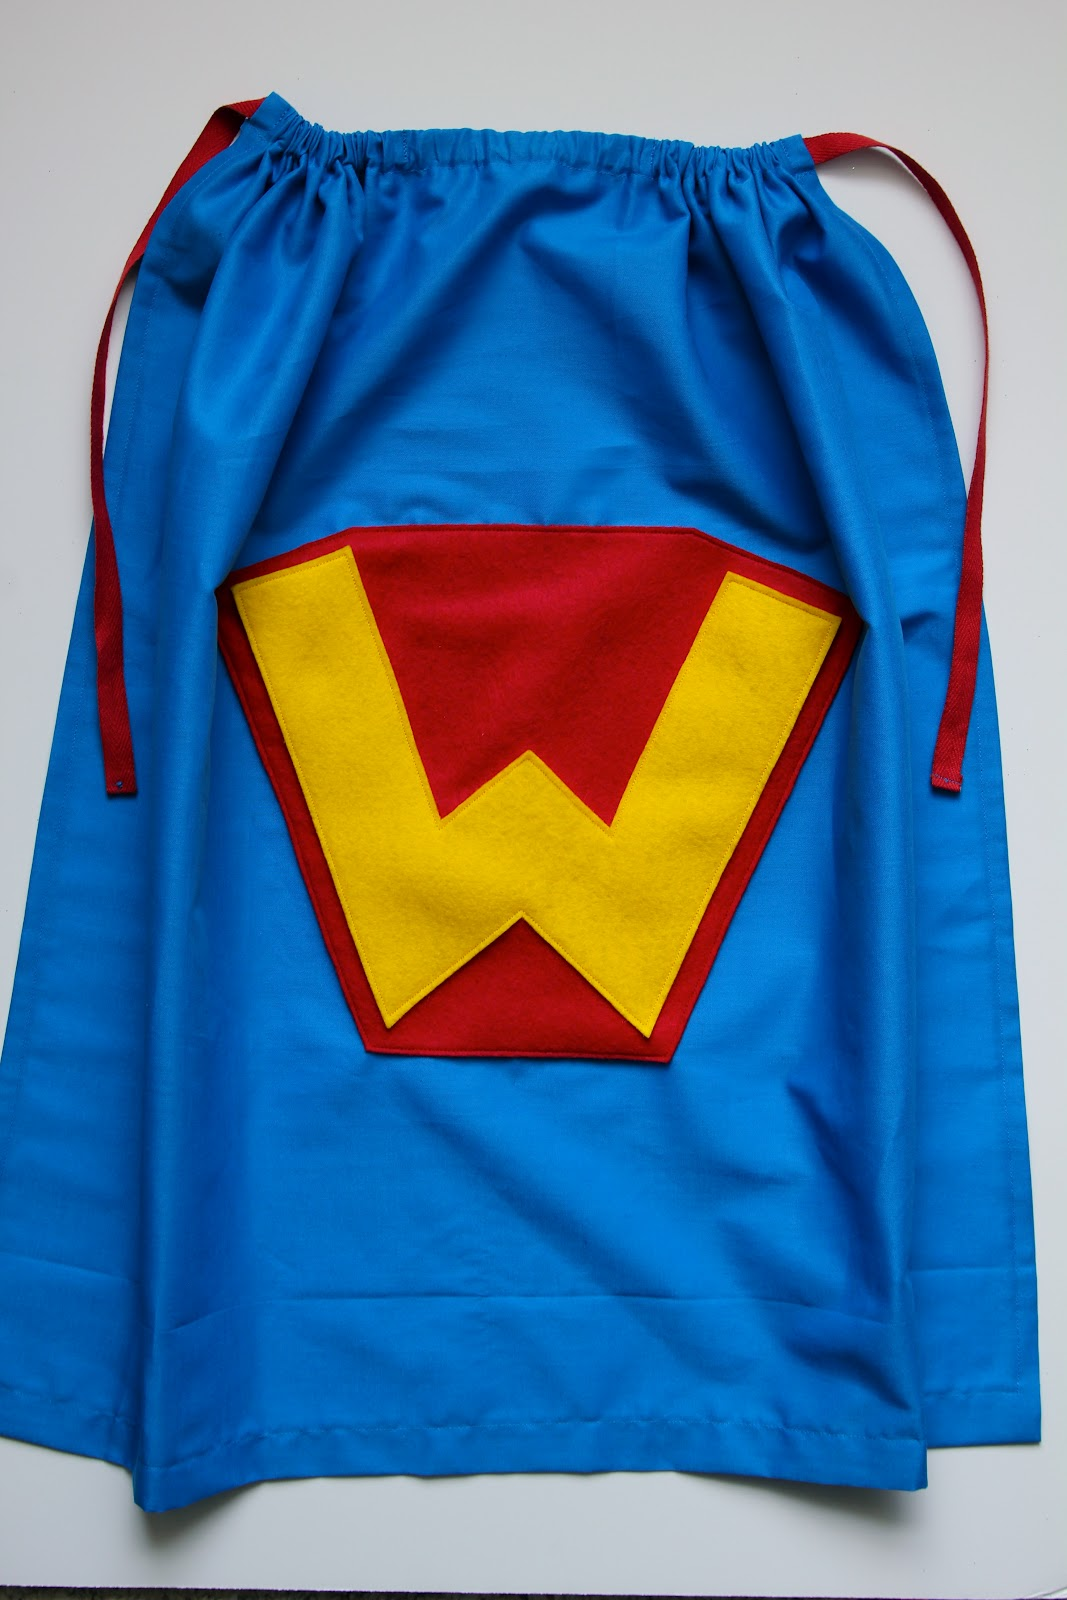 Superhero Capes with Felt Masks for Kids. Cape & Mask Specification The cape is silky to the touch, feels great on the skin with vibrant colors that will not fade.